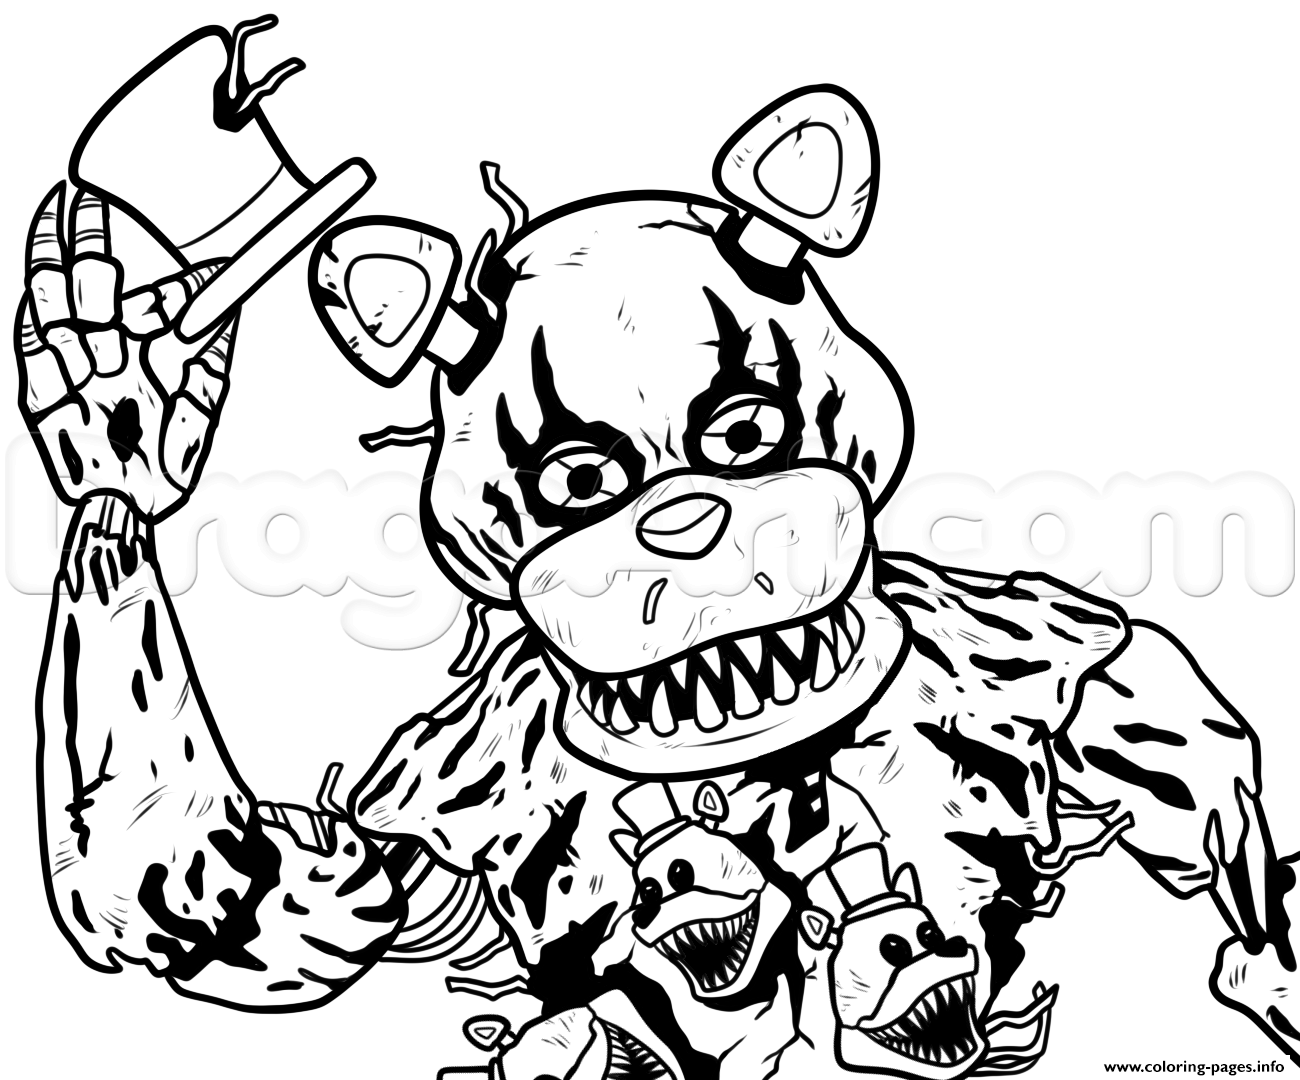 print draw nightmare freddy fazbear five nights at freddys fnaf